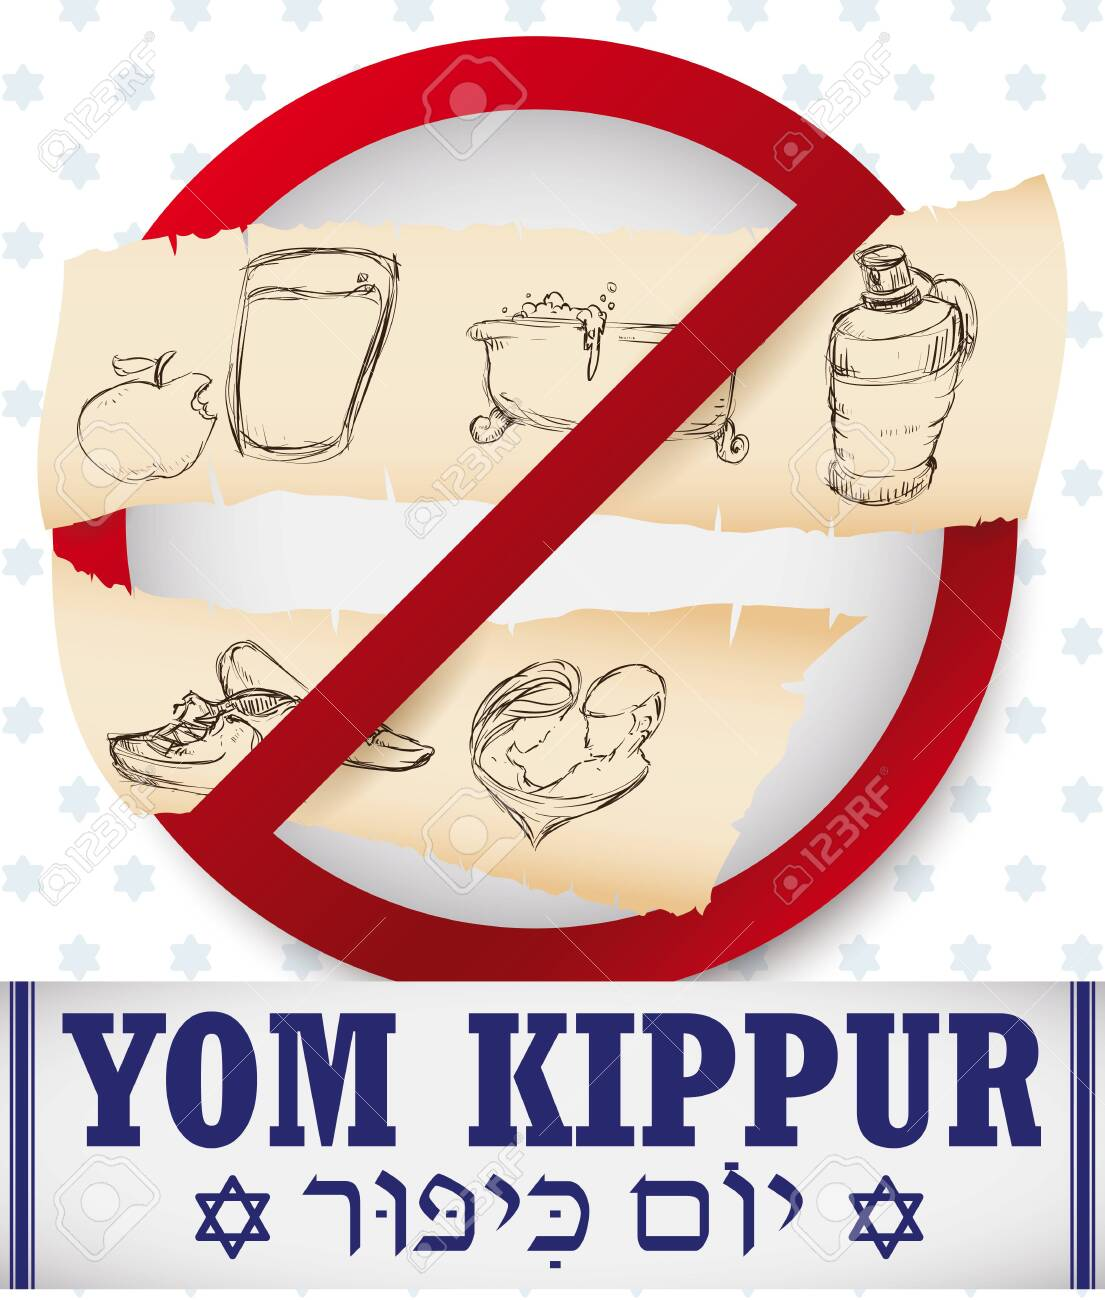 Signal With Prohibitions On Yom Kippur Written In Hebrew Over Royalty Free Cliparts Vectors And Stock Illustration Image 151191157